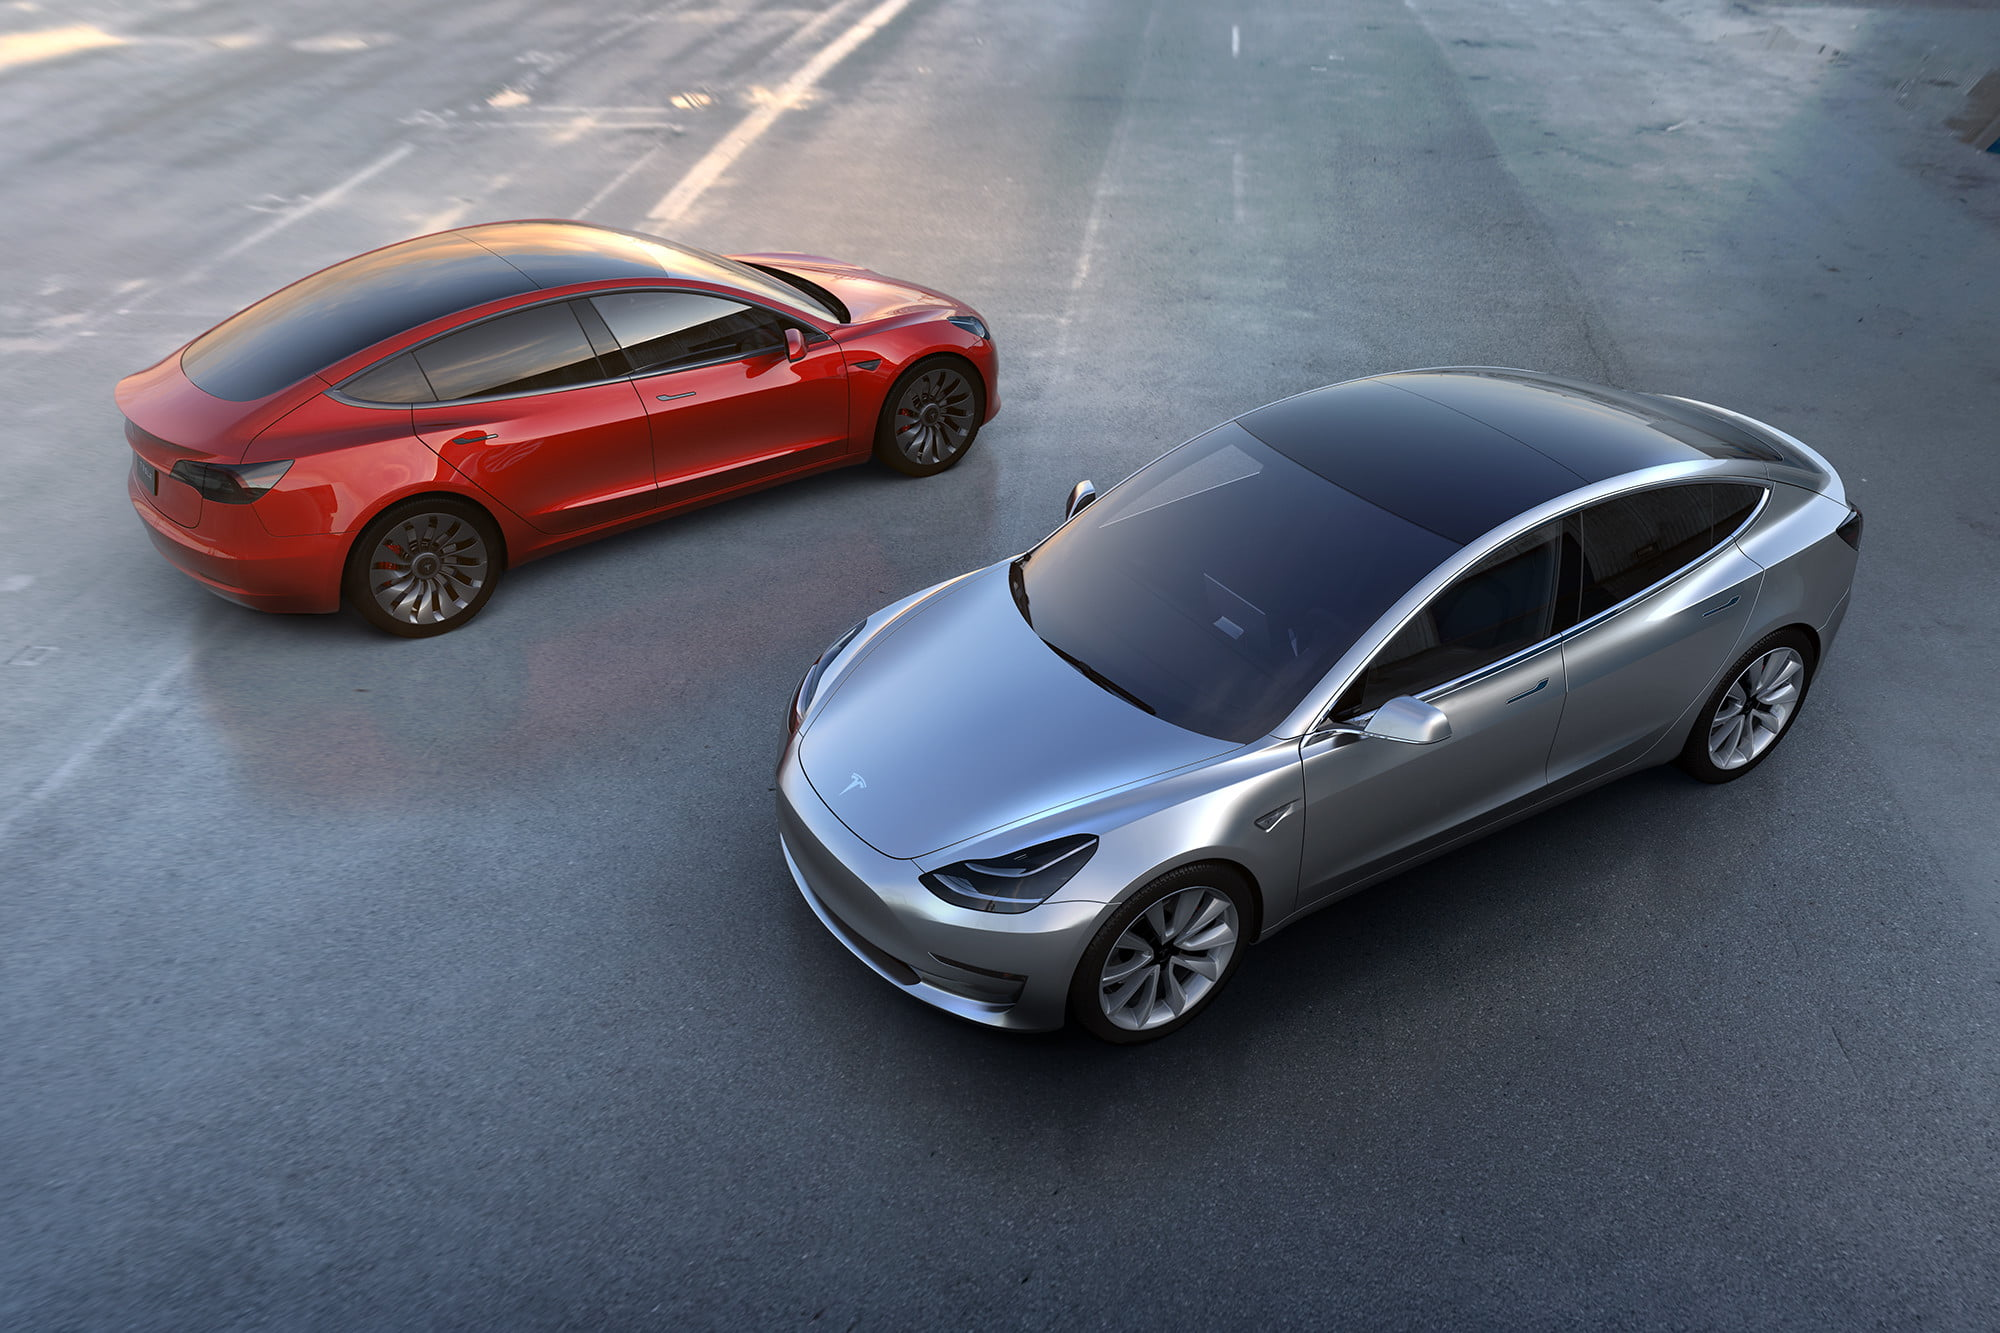 Tesla strongly rejects claims of acceleration issue with its cars